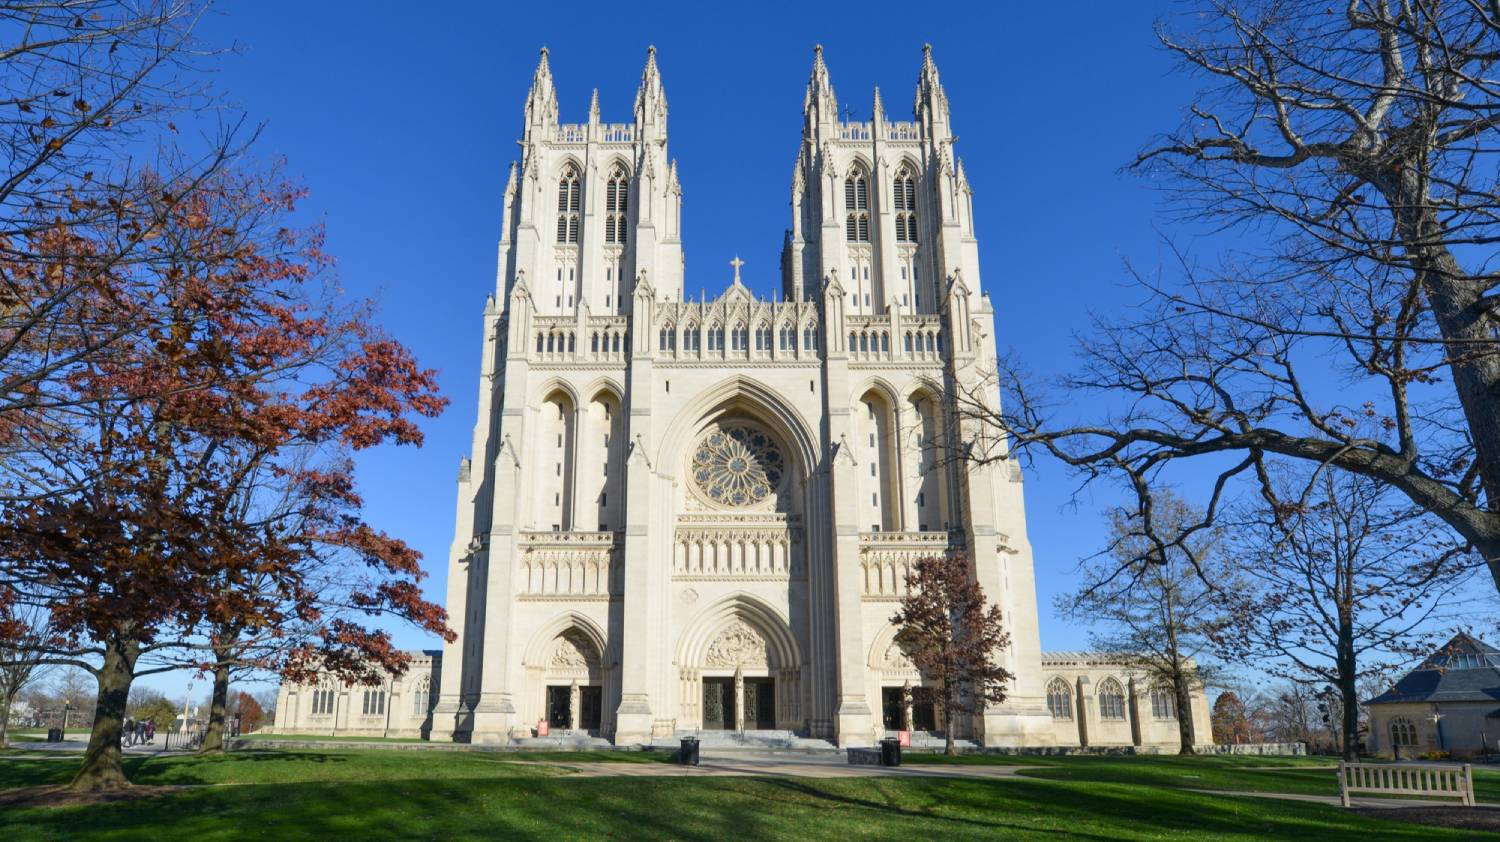 Washington National Cathedral - Things To Do In Washington, D.C.